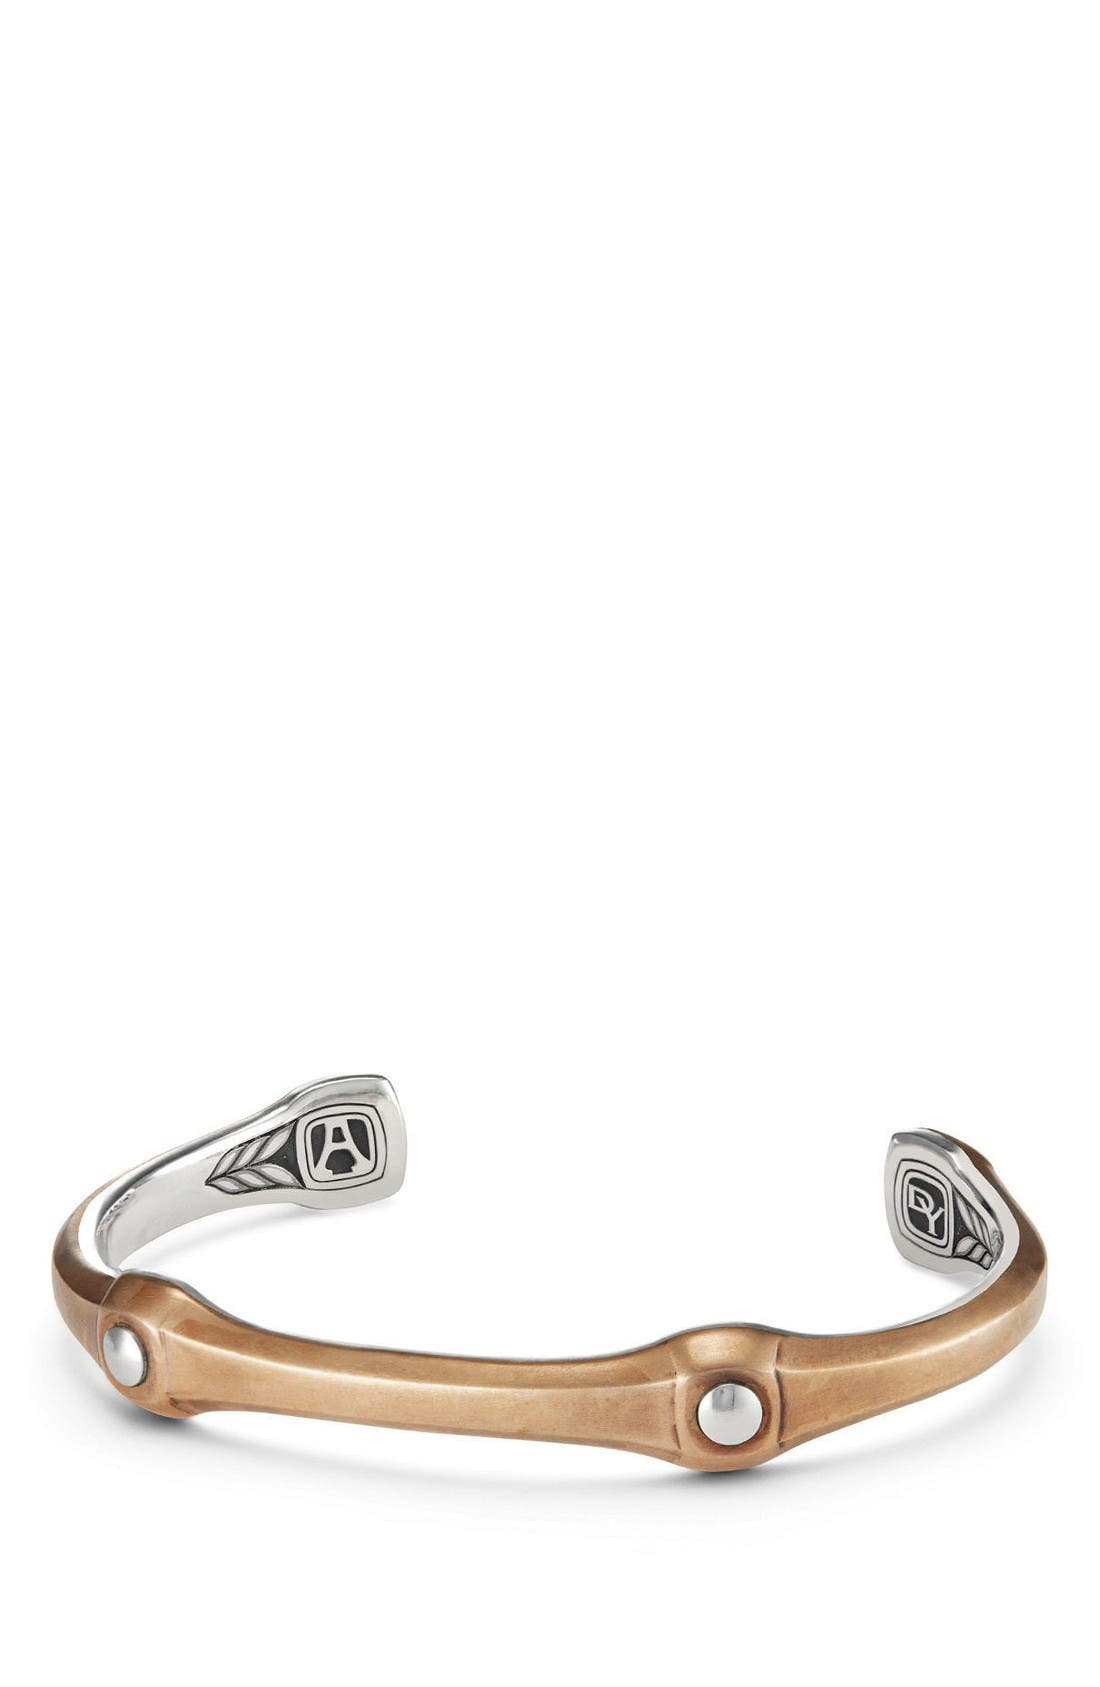 DAVID YURMAN Anvil Cuff Bracelet, 10.5mm